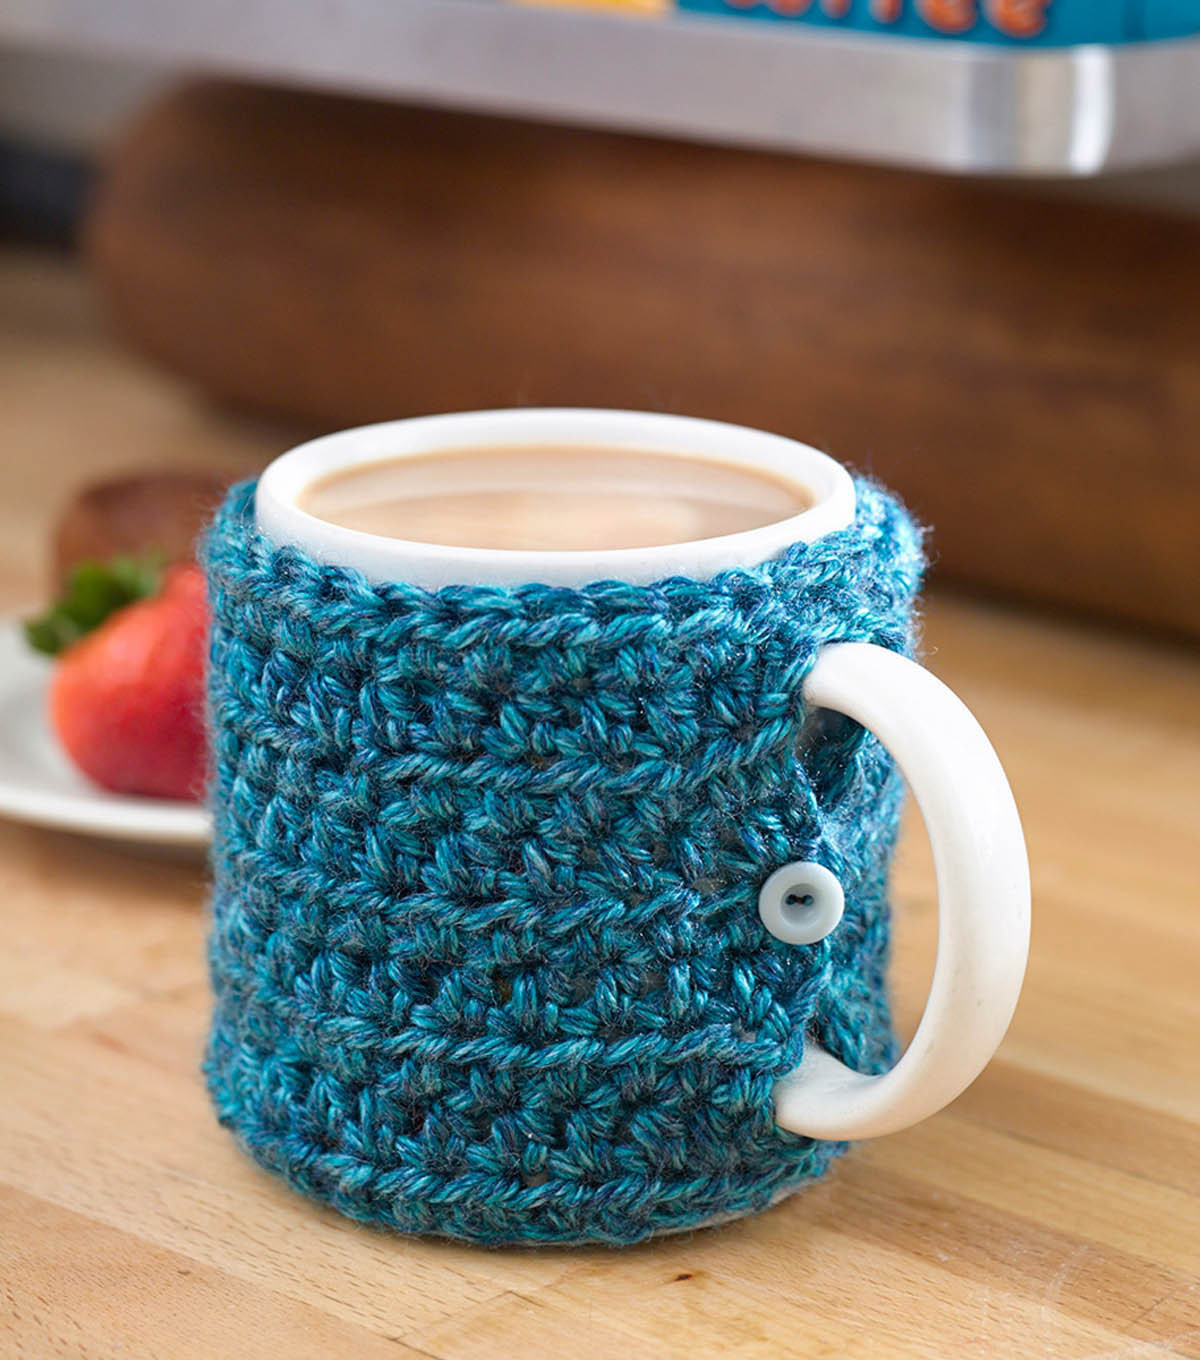 Crochet Coffee Cup Cozy Best Of Craftdrawer Crafts Free Easy to Crochet Mug Cozy Patterns Of Crochet Coffee Cup Cozy Elegant Wooftastic Puppy Crochet Coffee Cozy